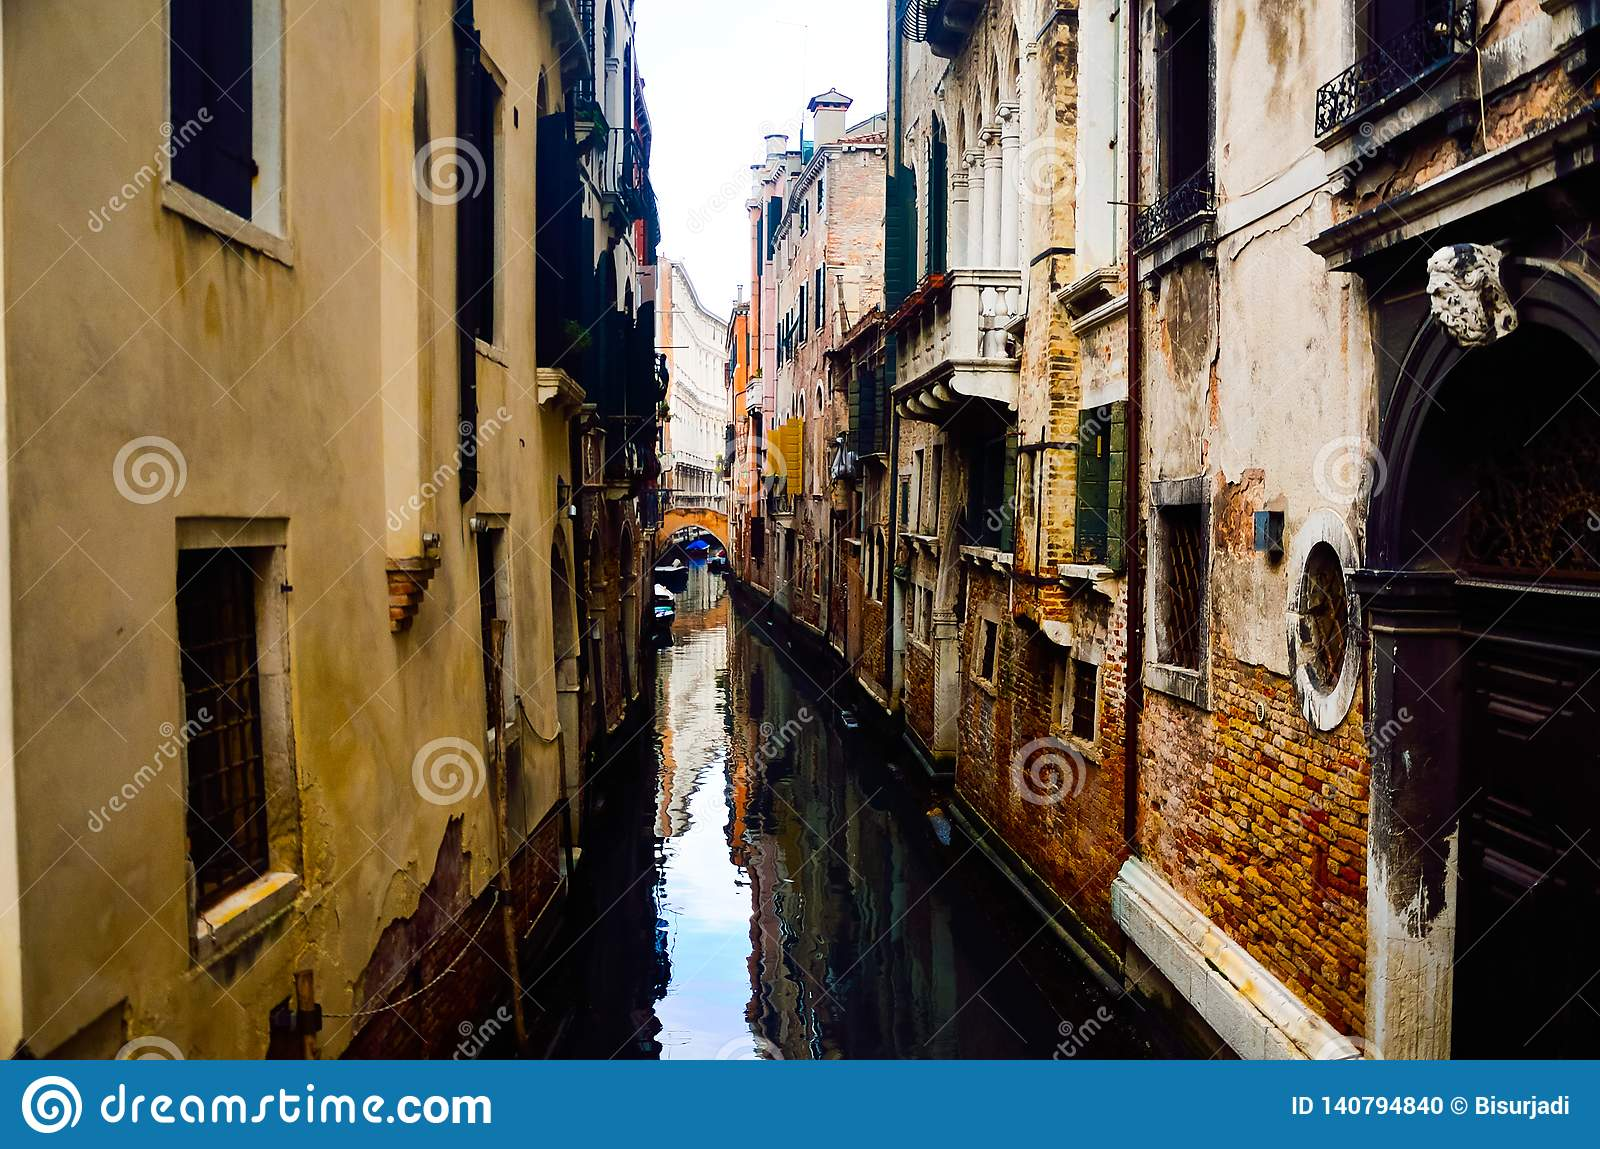 Small tight canal at romantic city of Venice